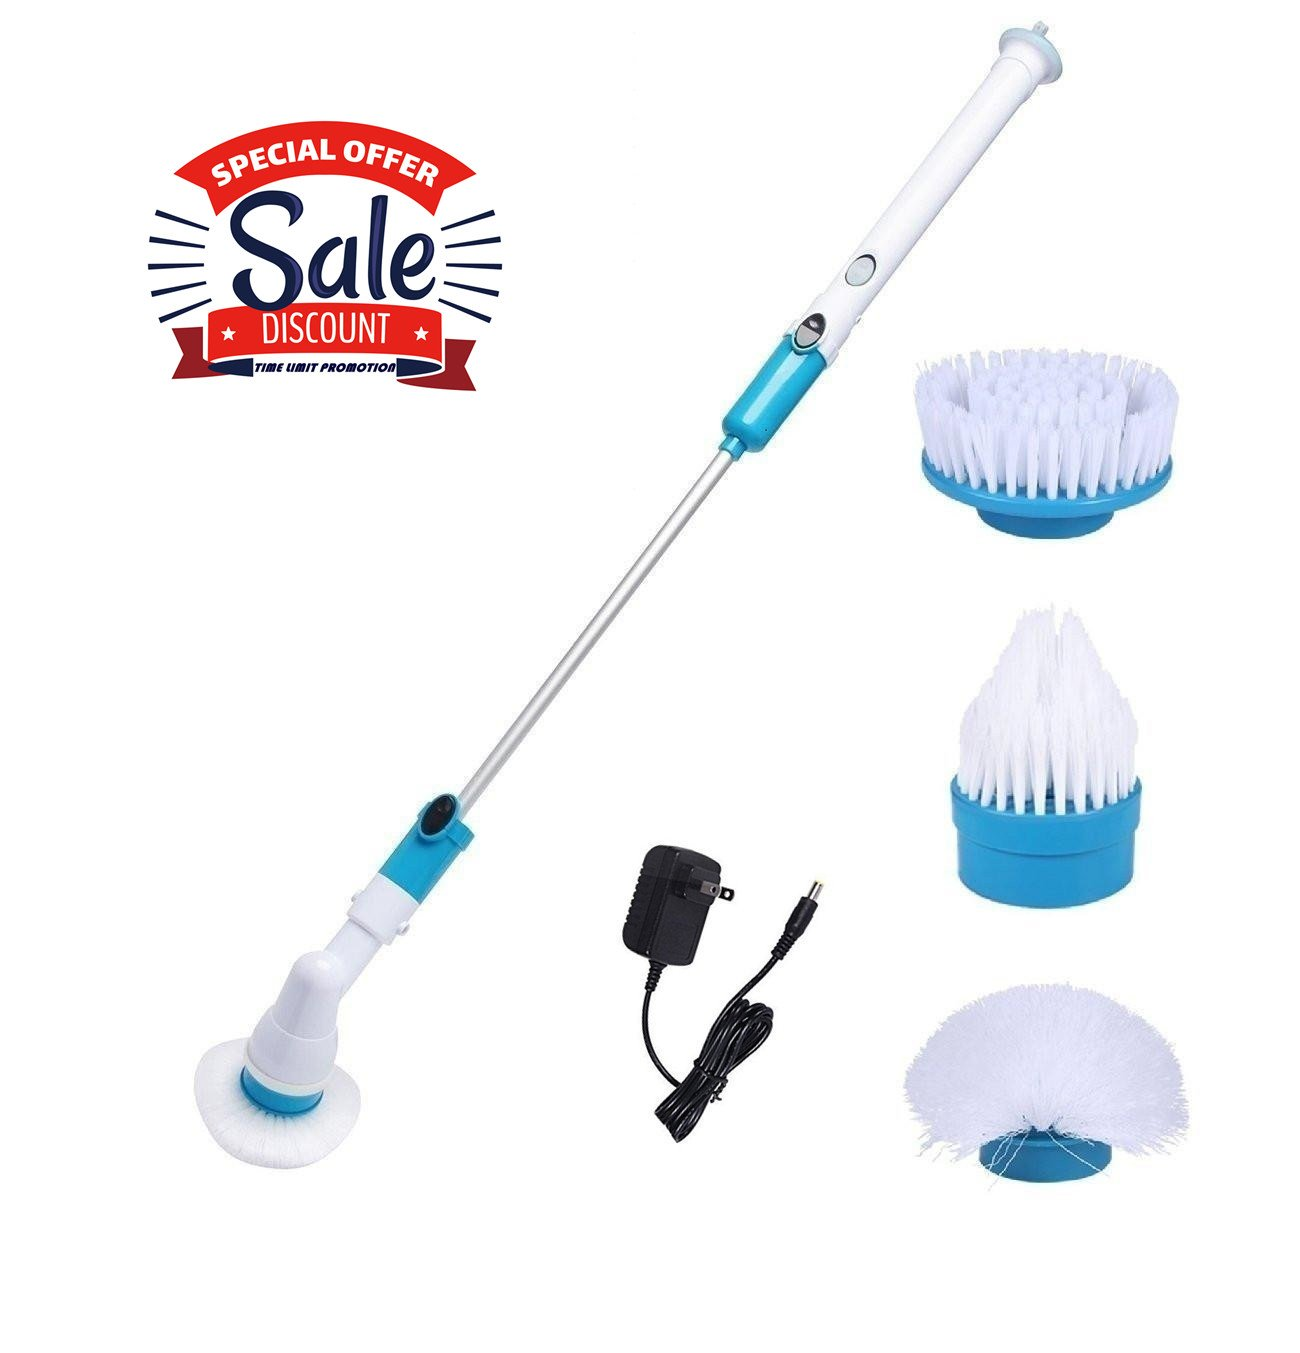 Lazaga Electric Spin Scrubber, Rechargeable Turbo Scrubber, Automatic Cleaning Scrubber, 3 Head Sets for Multi-Purpose Uses(Bathroom, Floor, Wall, Floor, Scrub Brush Scrubber)